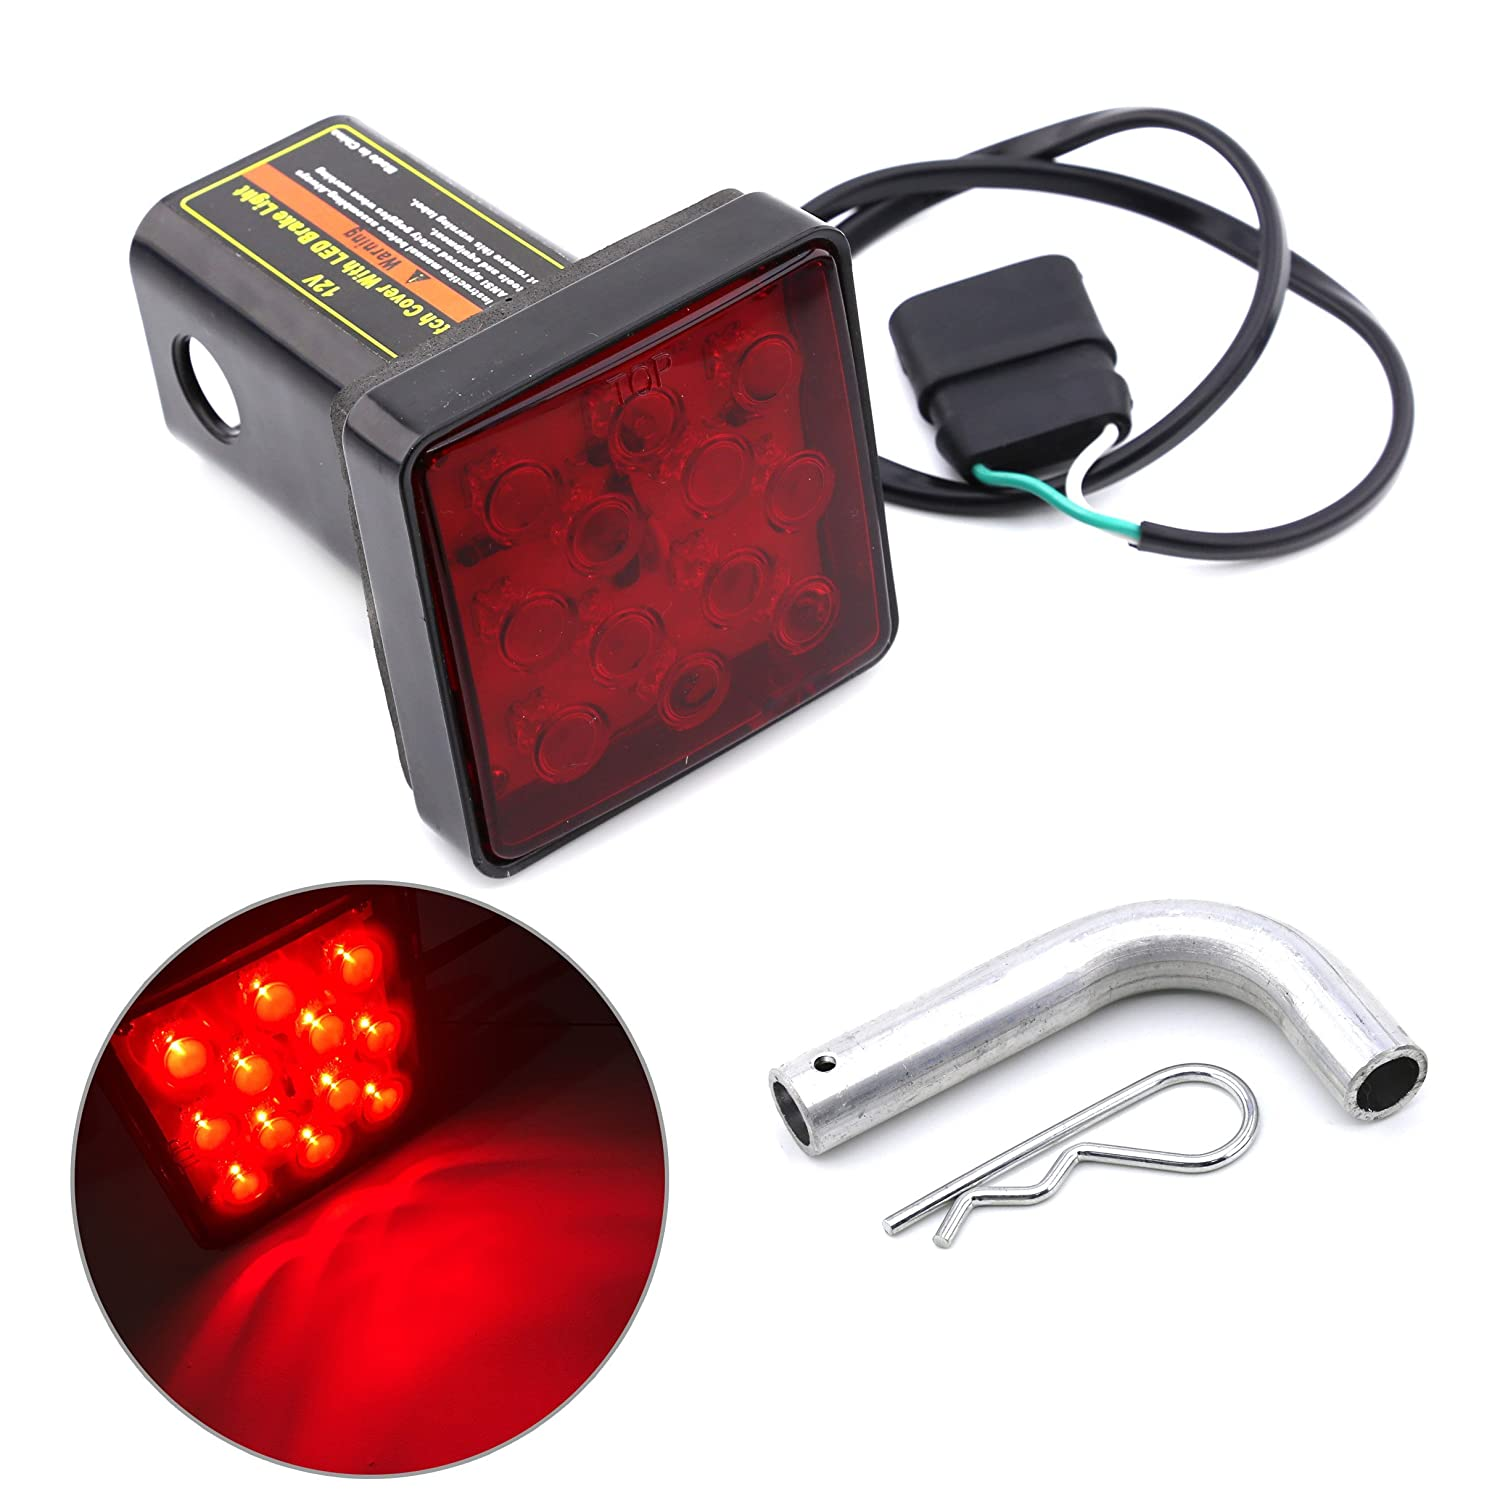 Keyecu 12 LED Tail Brake Light with 2' Red Lense Trailer Hitch Receiver Cover for Towing Hauling Truck SUV RV 12V 2 hitch brake light